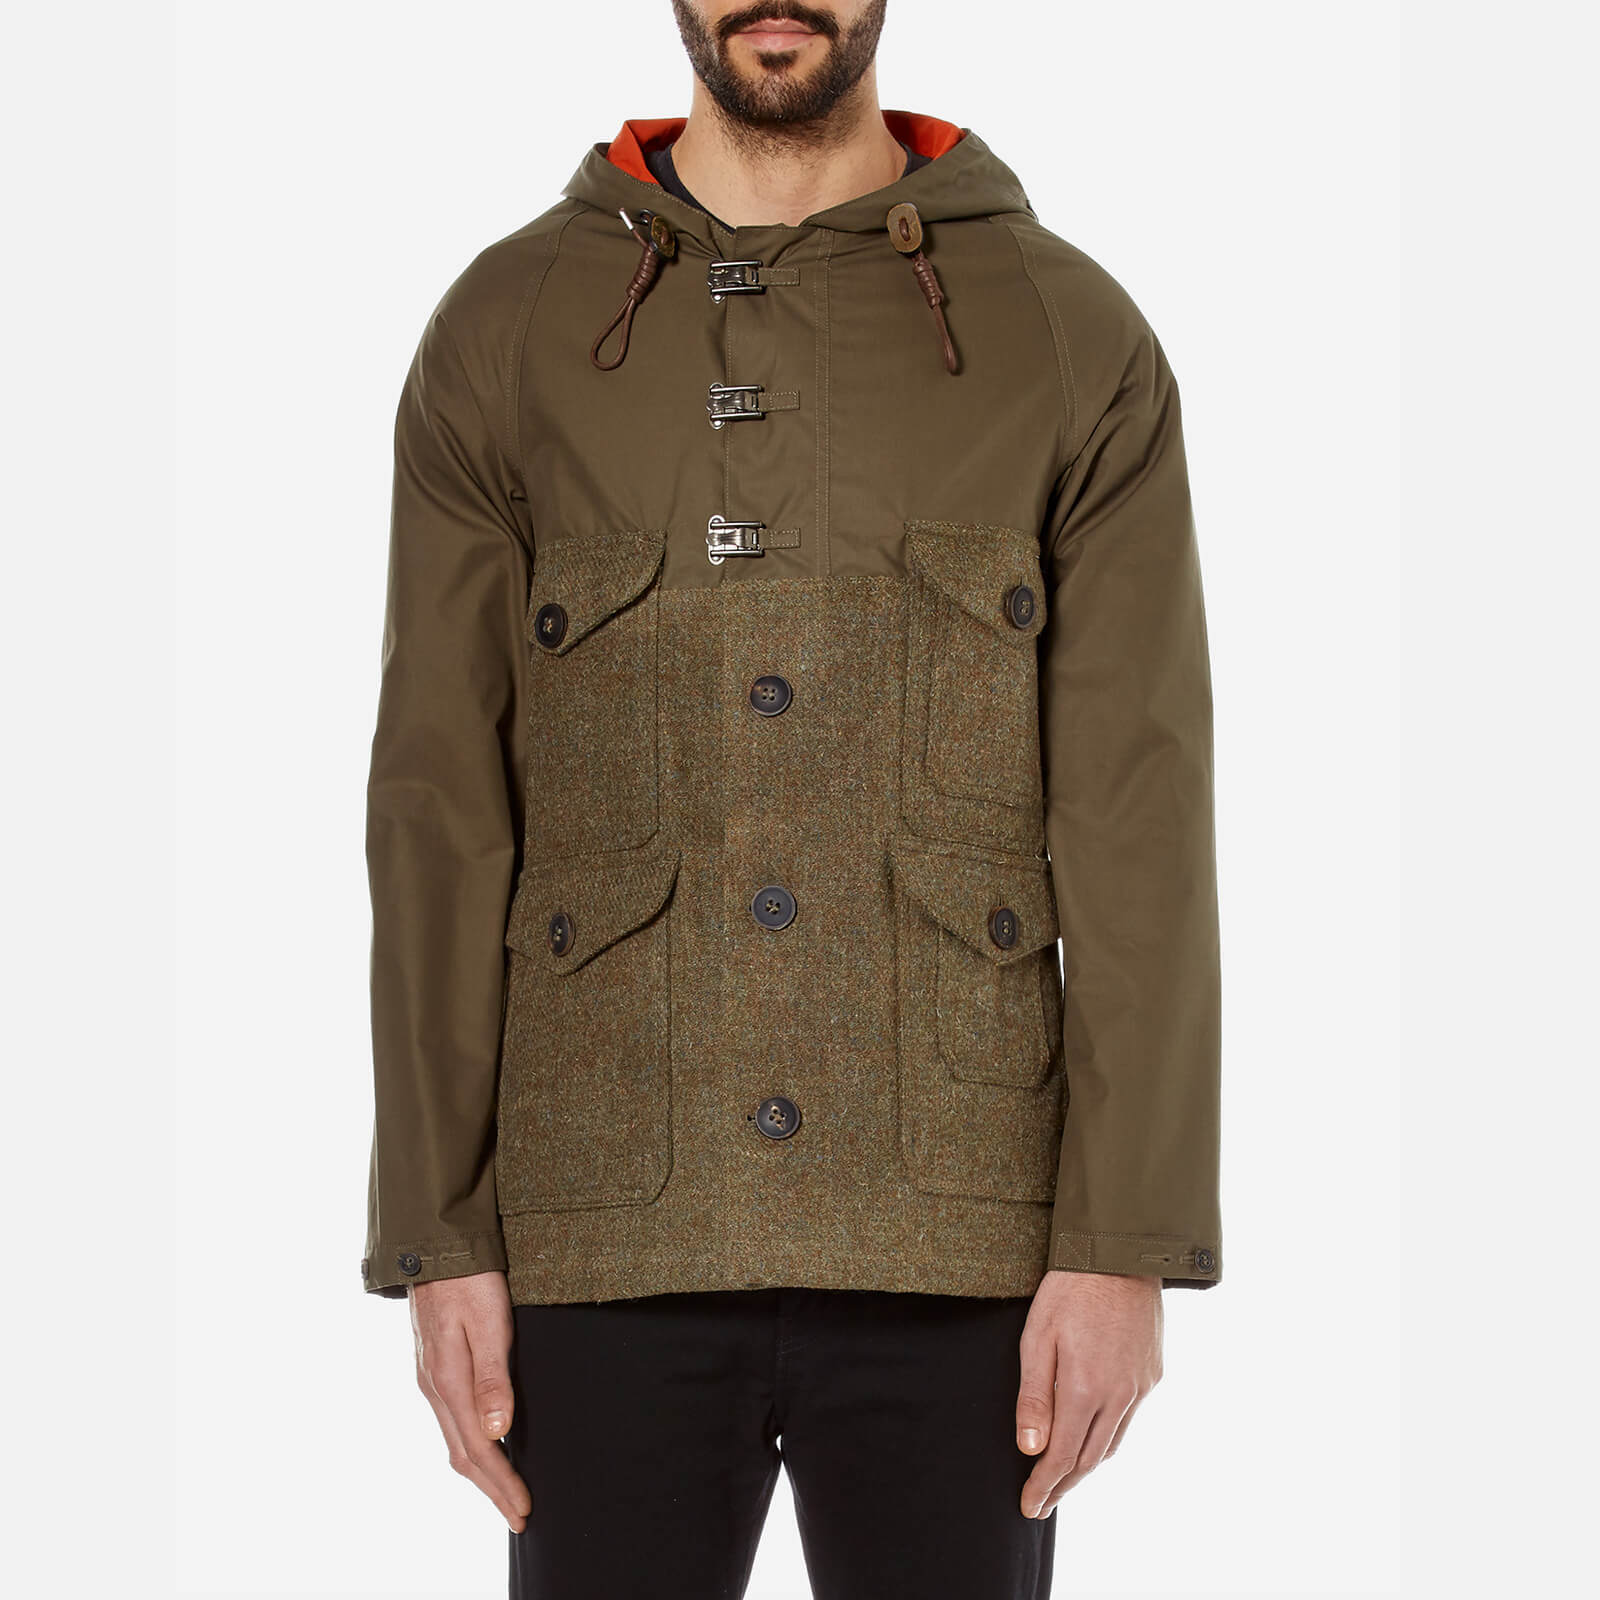 d1be719e96ef55 Nigel Cabourn Men s Hybrid Finish Harris Tweed Cameraman Converse Jacket -  Army - Free UK Delivery over £50